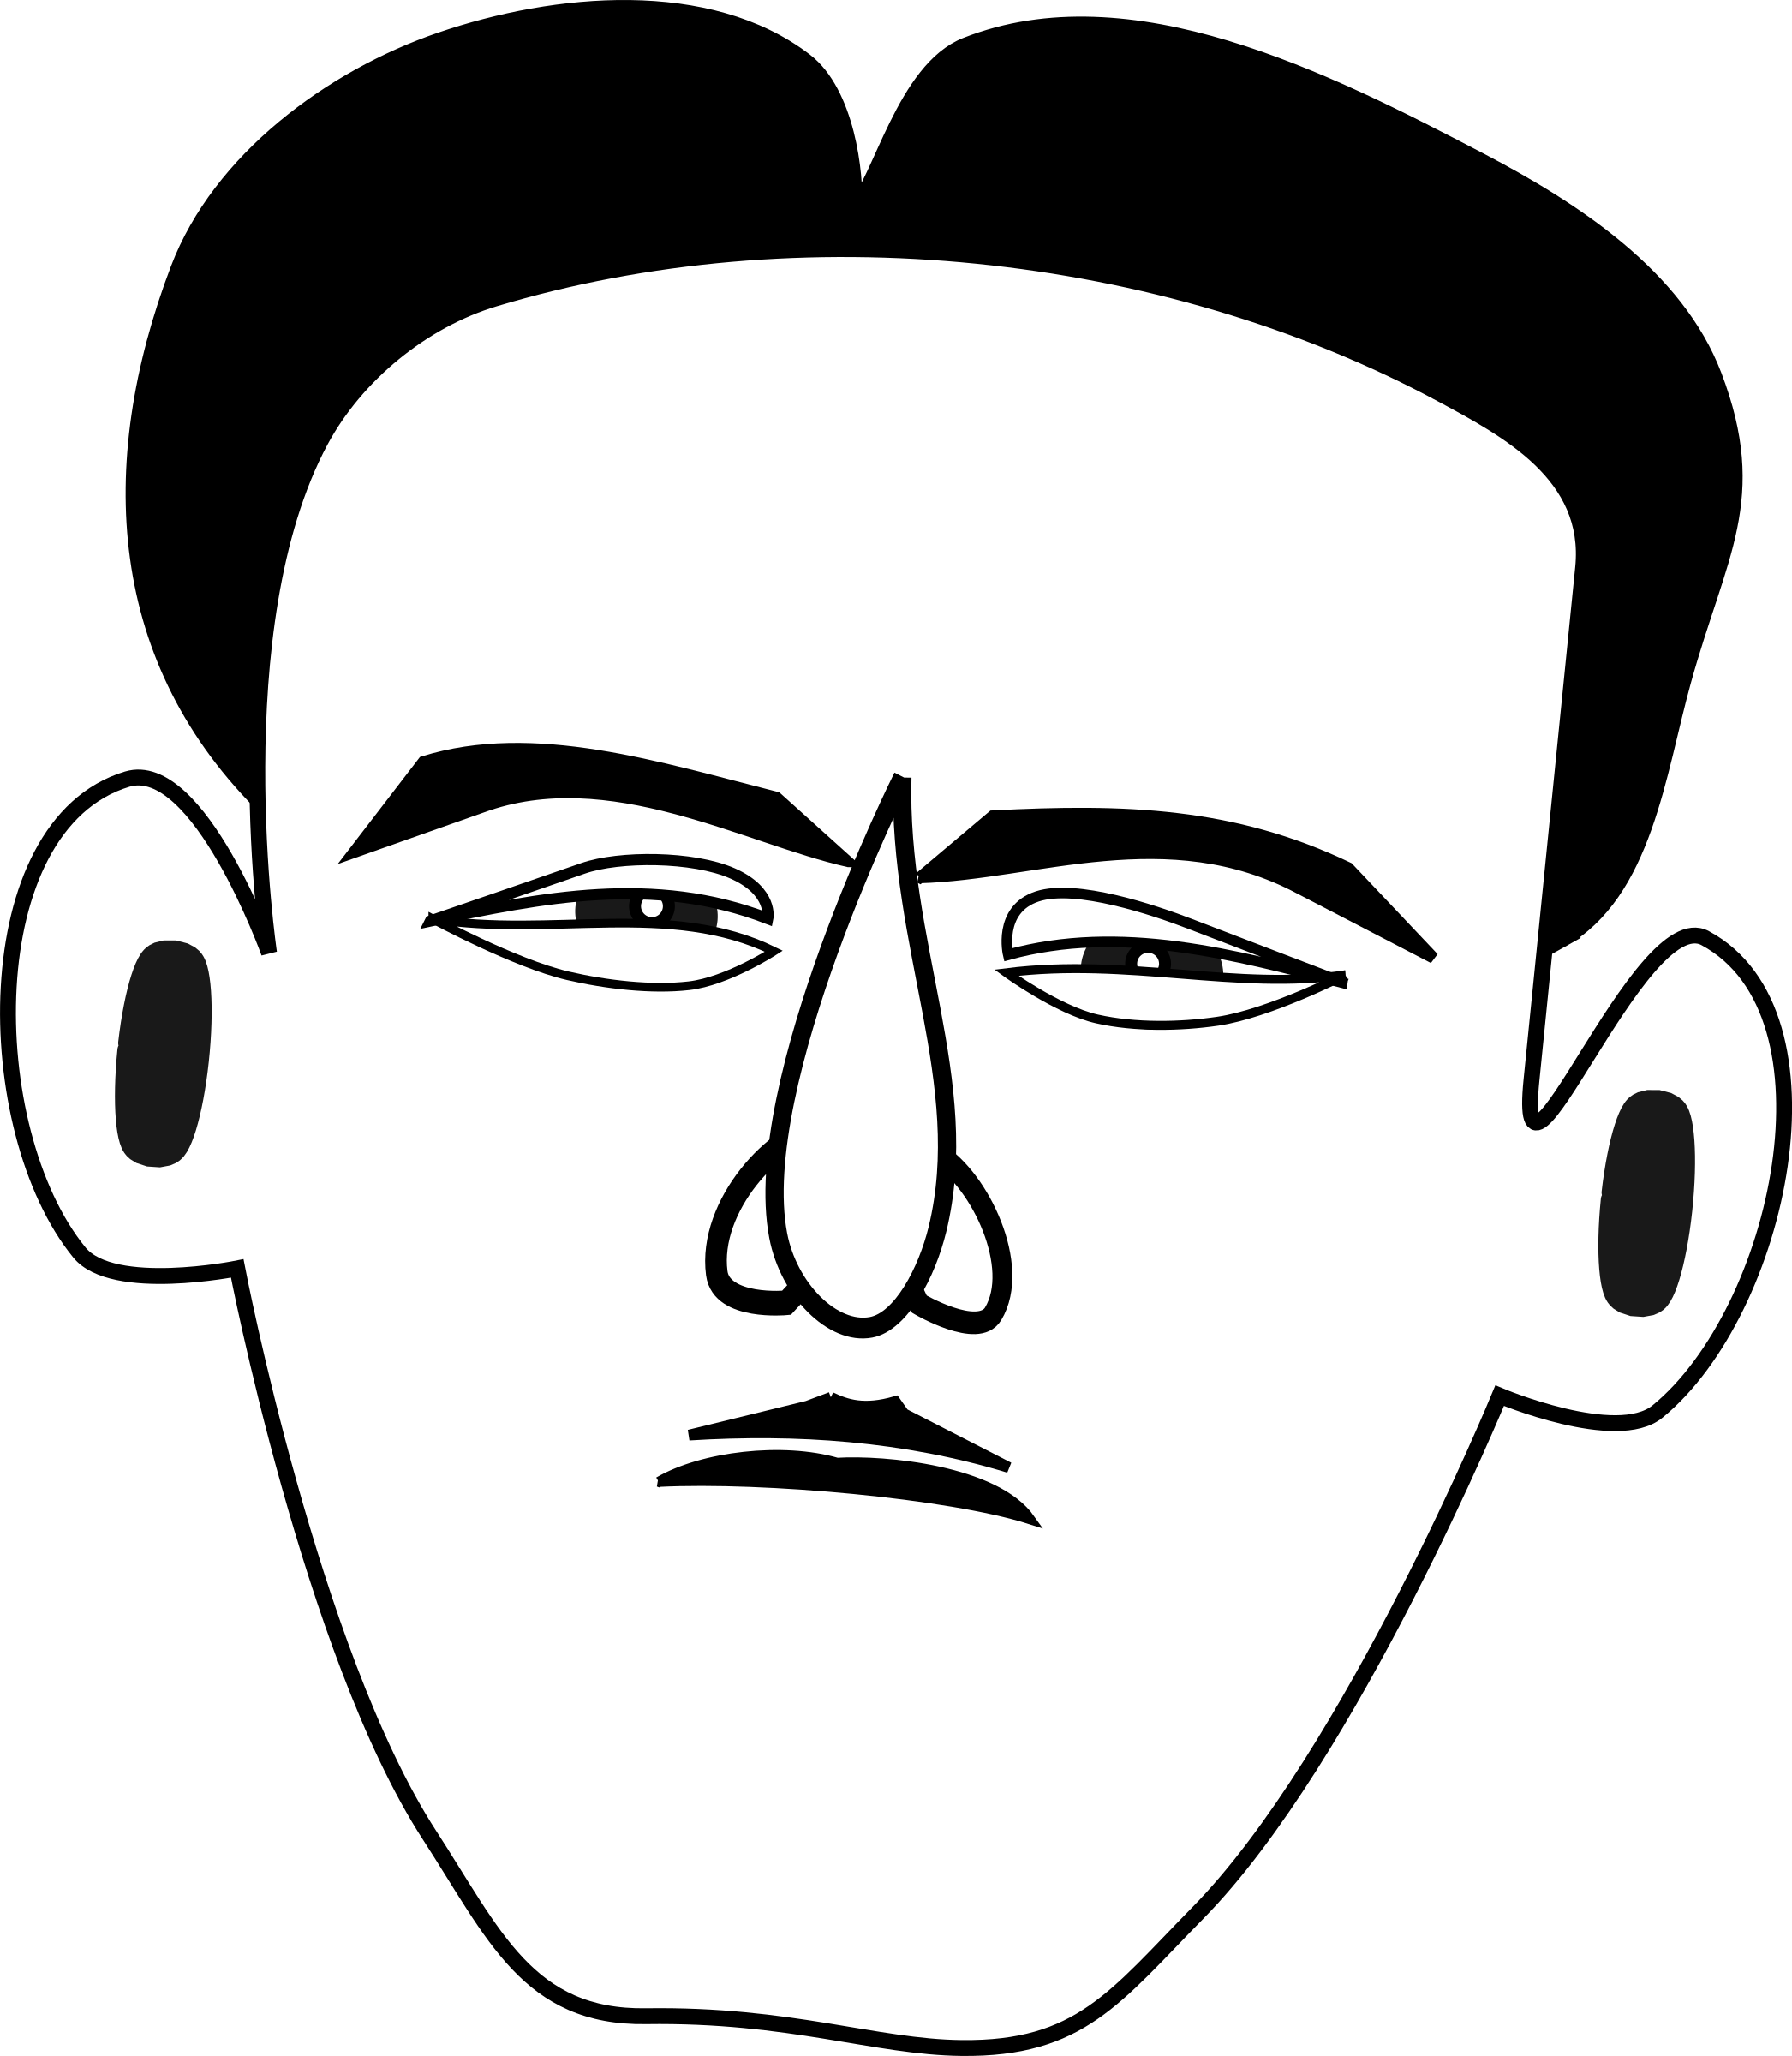 Timorous afraid big image. Fear clipart drawing